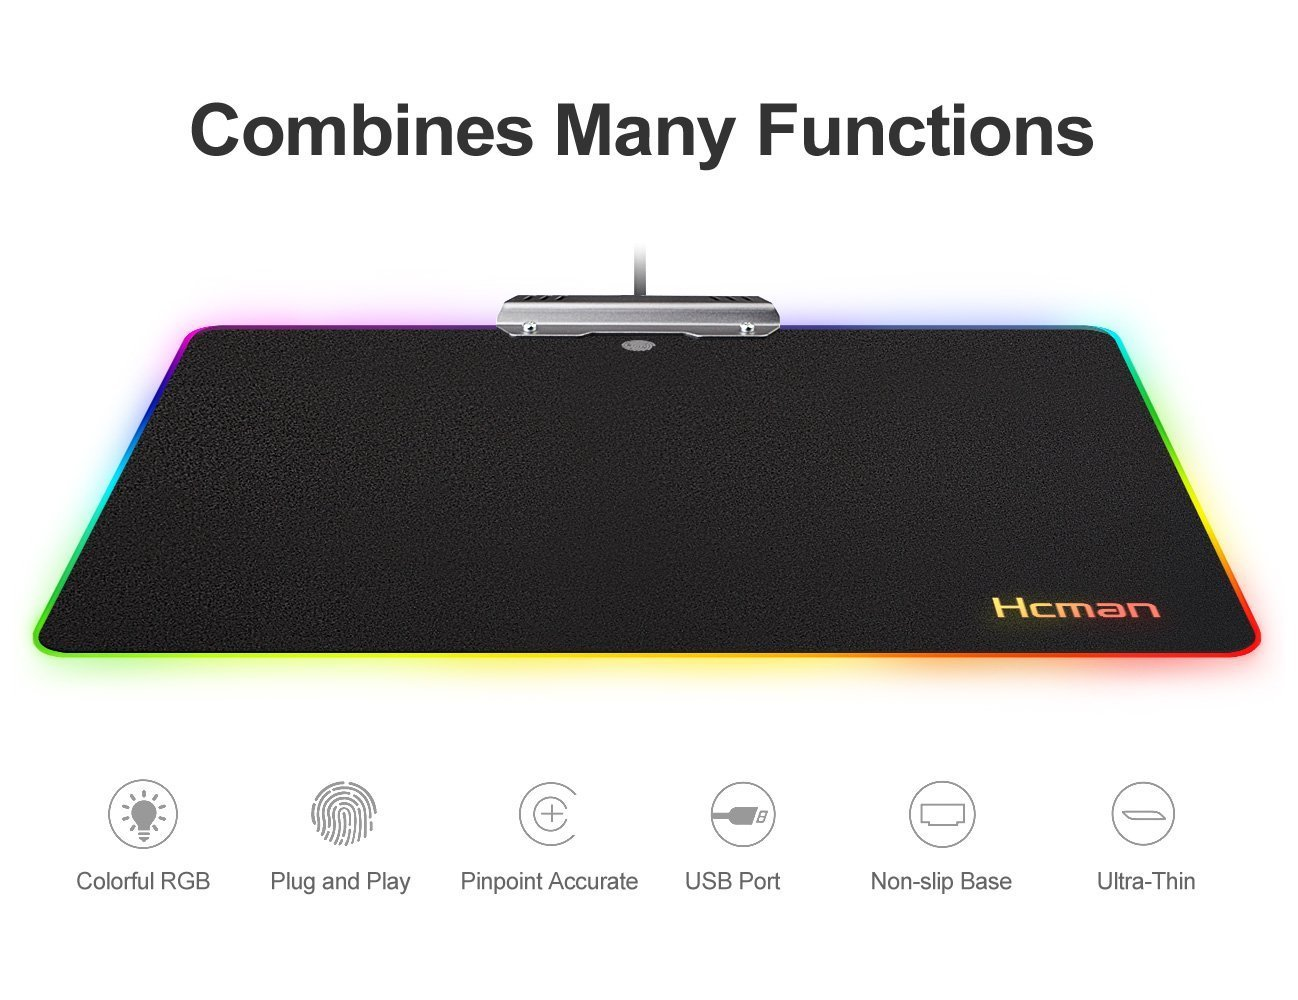 LED RGB Gaming Mouse Pad - Hcman Comfortable Lighting Hard USB Wired Colorful Waterproof Mice Mat for Computer PC & Mac Gamers (Black)